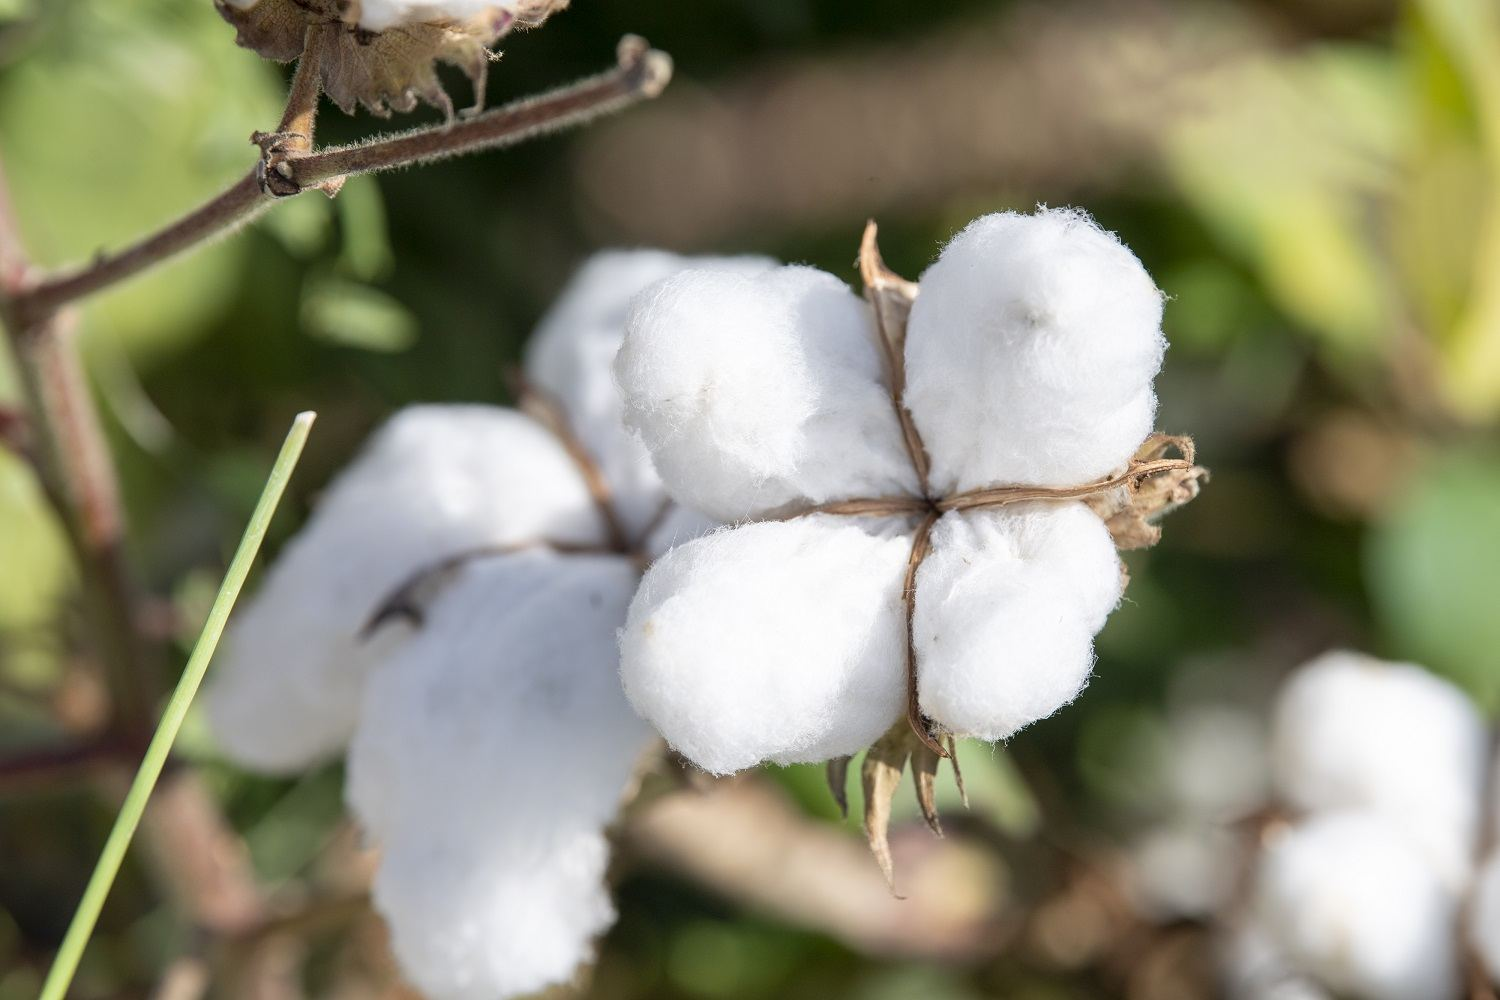 Share of cotton in total export of Azerbaijan increases